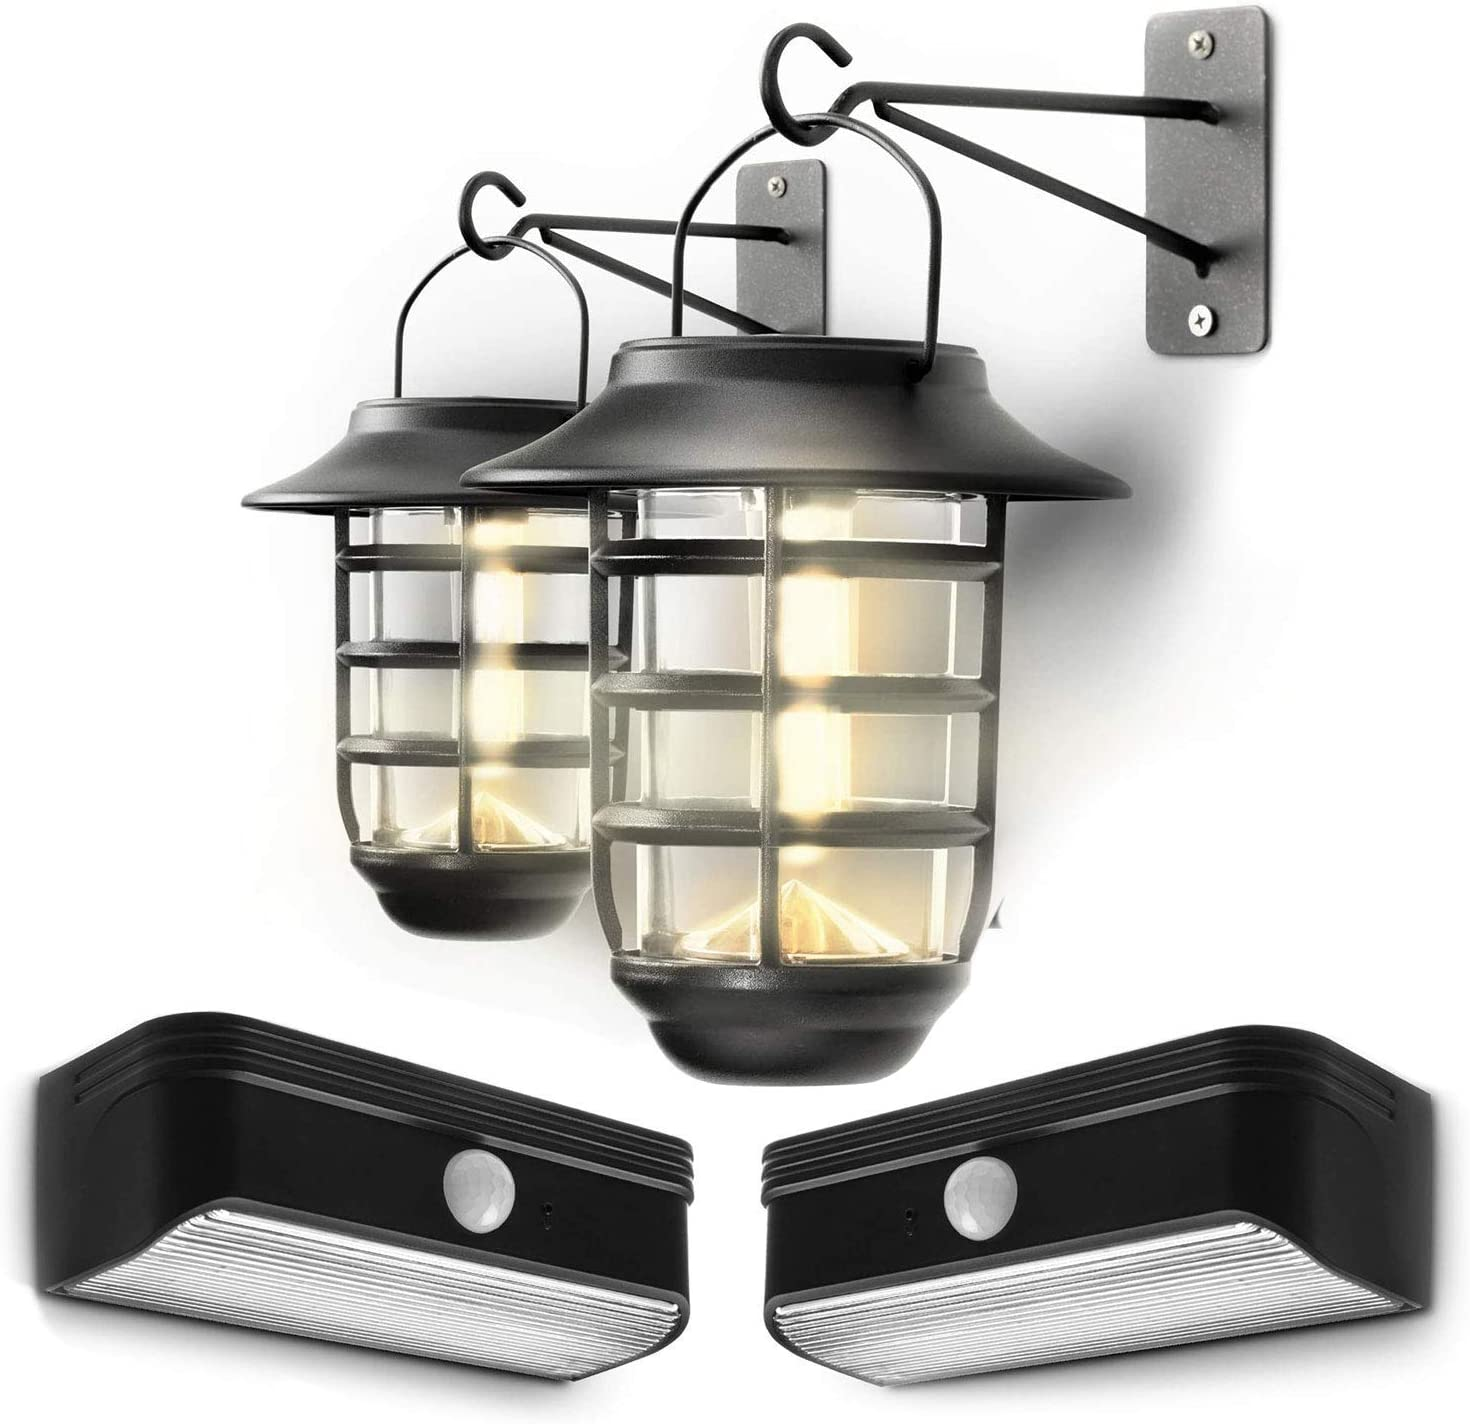 Home Zone Security Solar Wall Lantern Lights and Solar Step Lights Bundle Kit